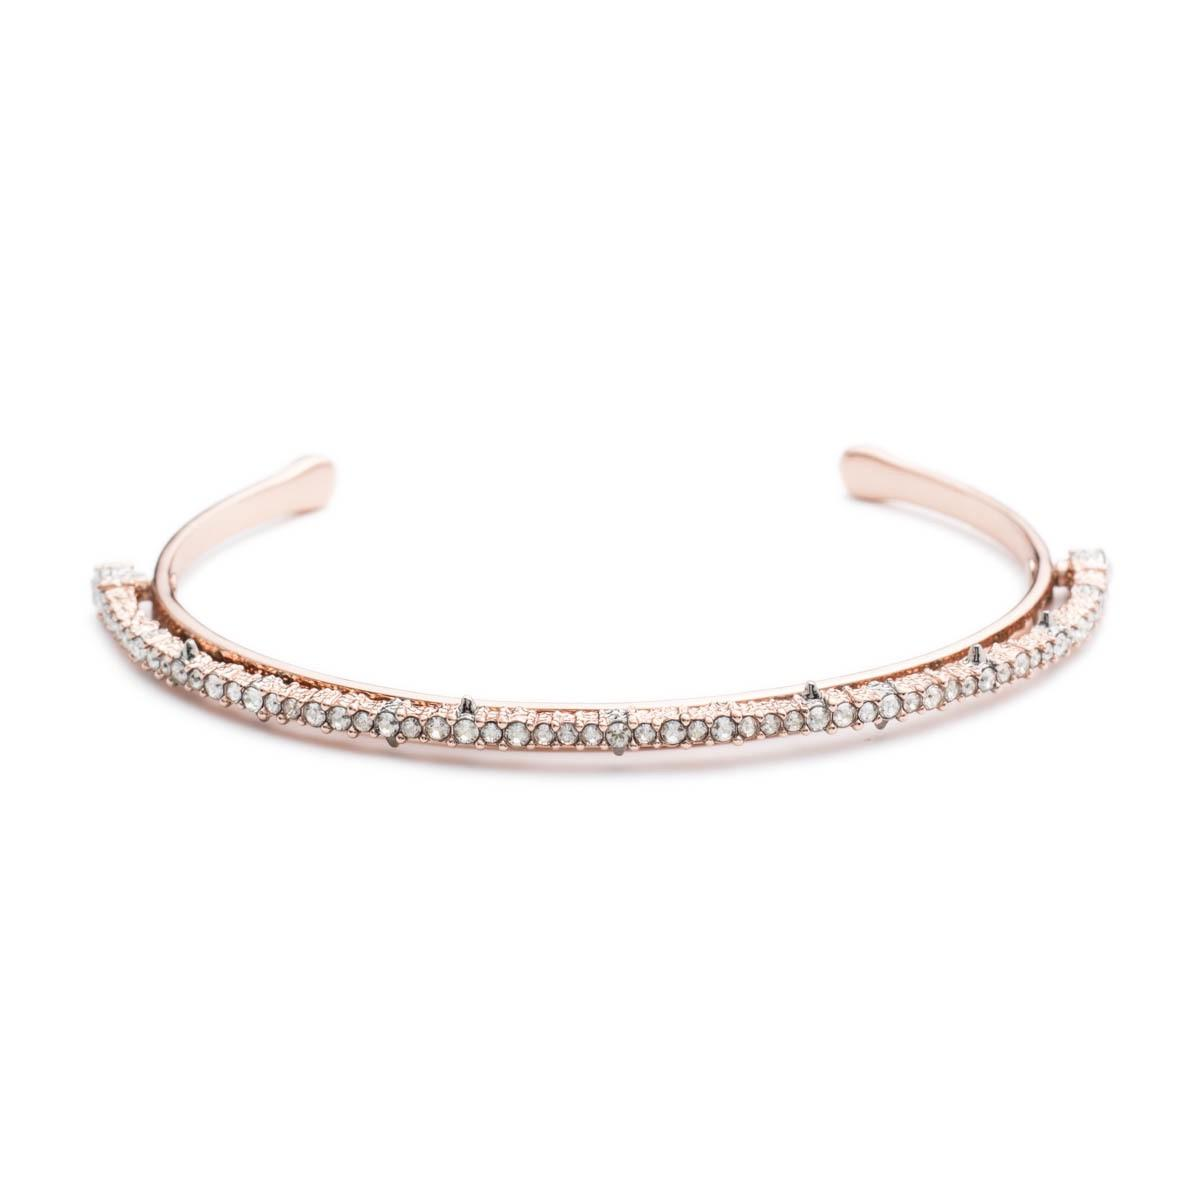 Alexis Bittar Crystal Lace Orbiting Wrist Cuff In Rose Gold